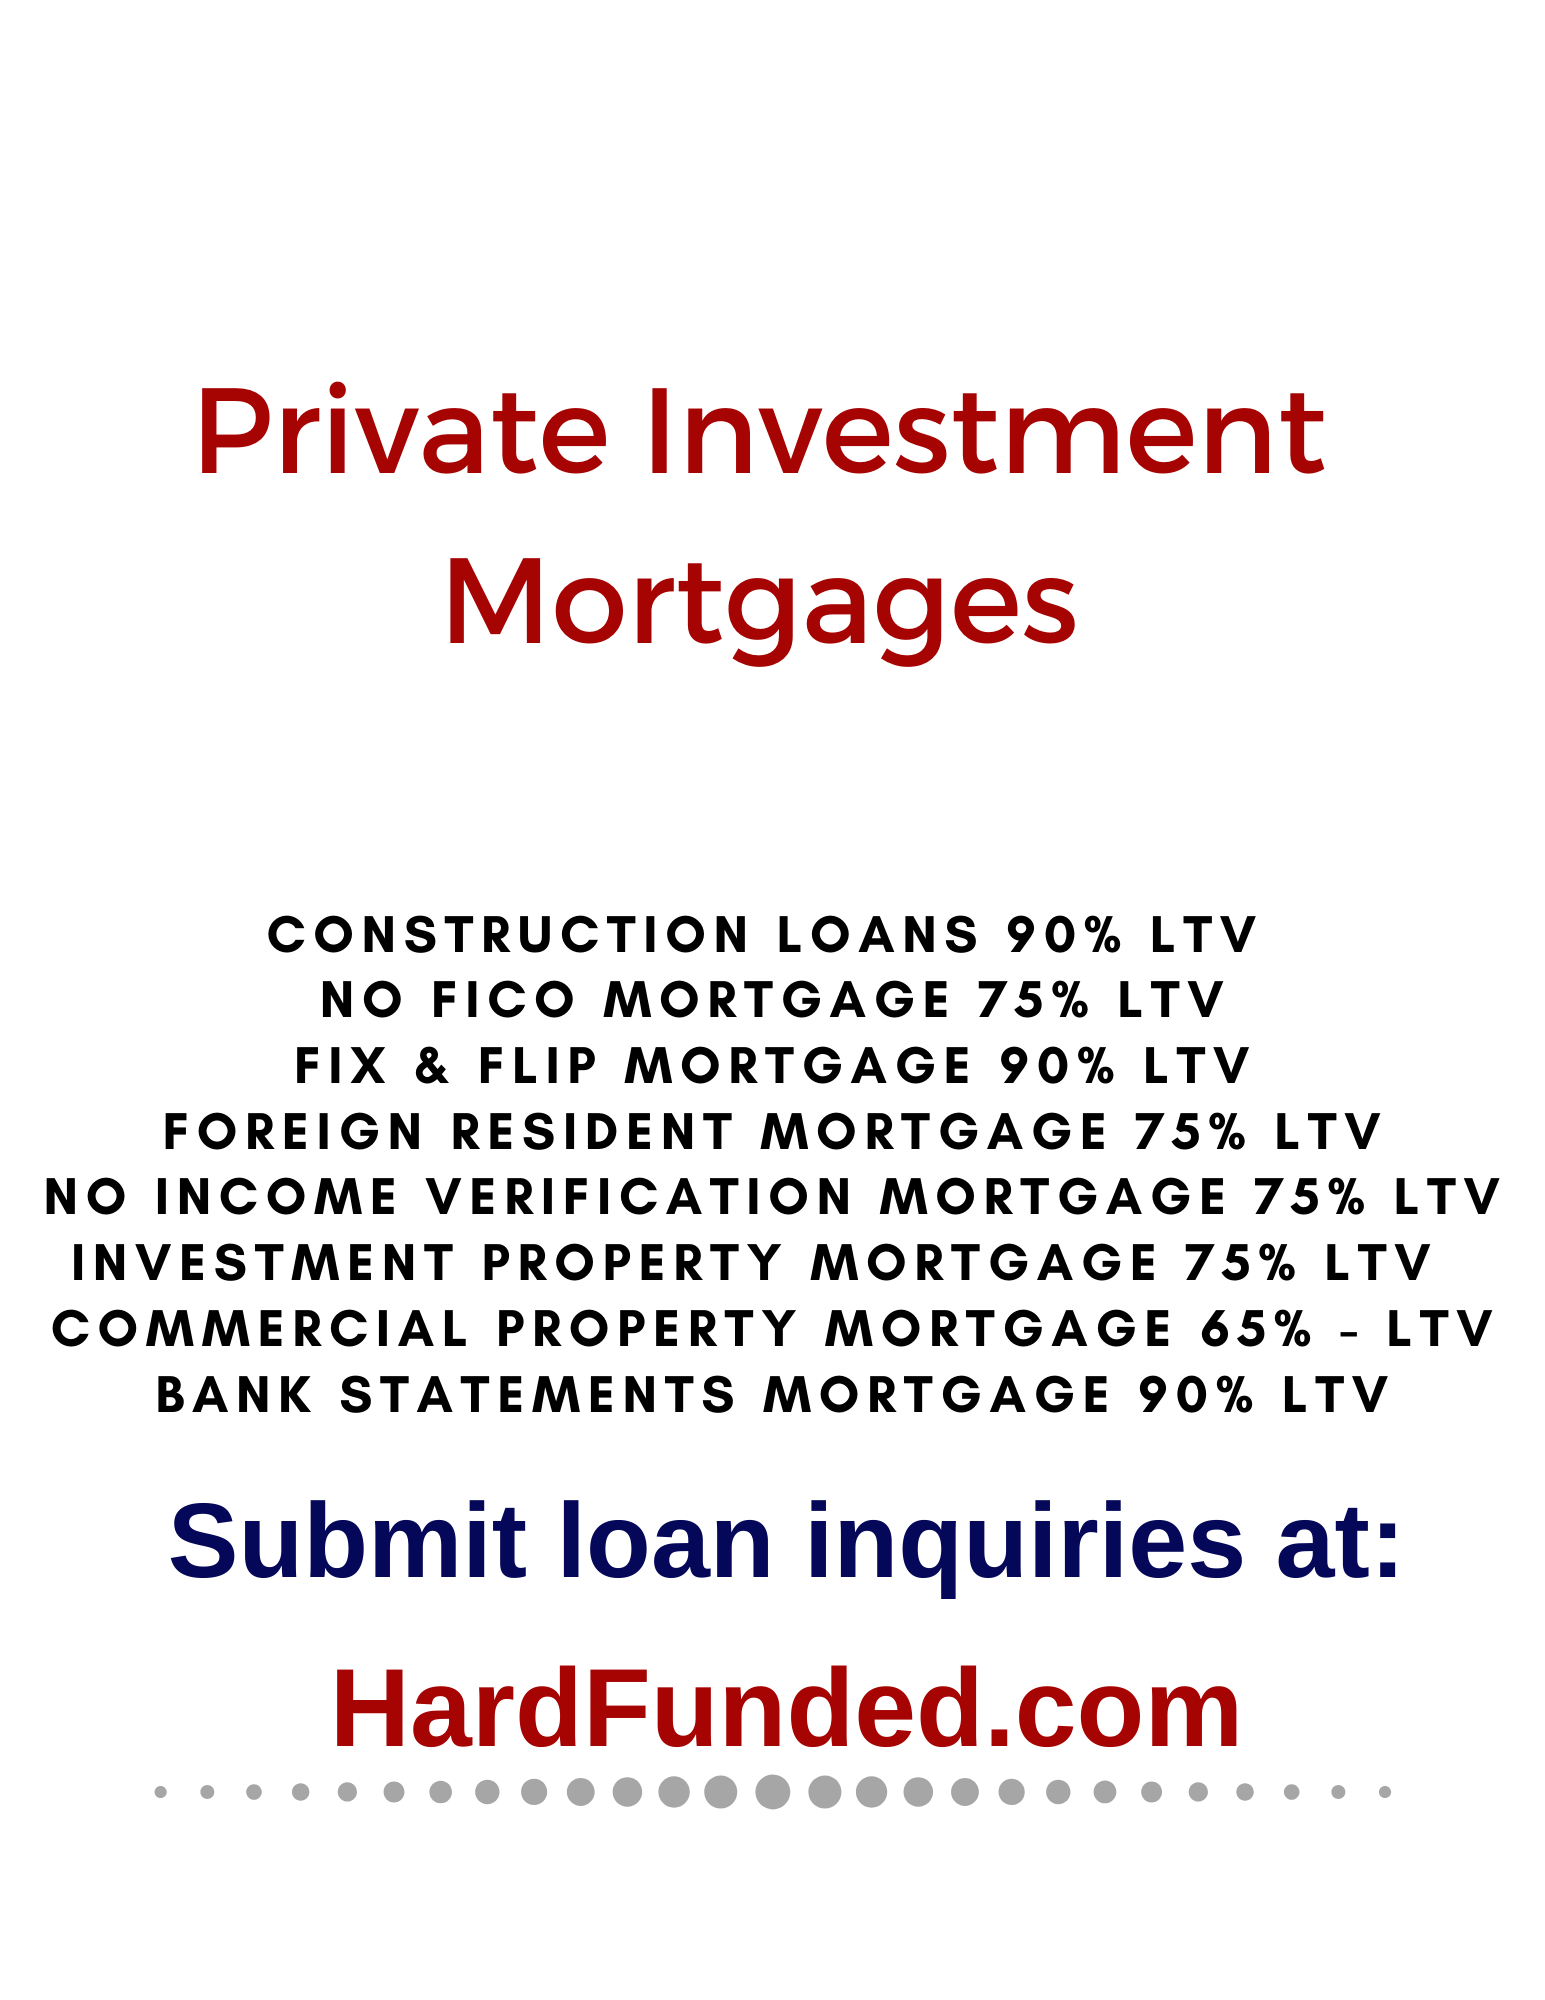 HardFunded.com Real Estate Investment Marketplace Now Connects Borrowers and Lenders in All Fifty States